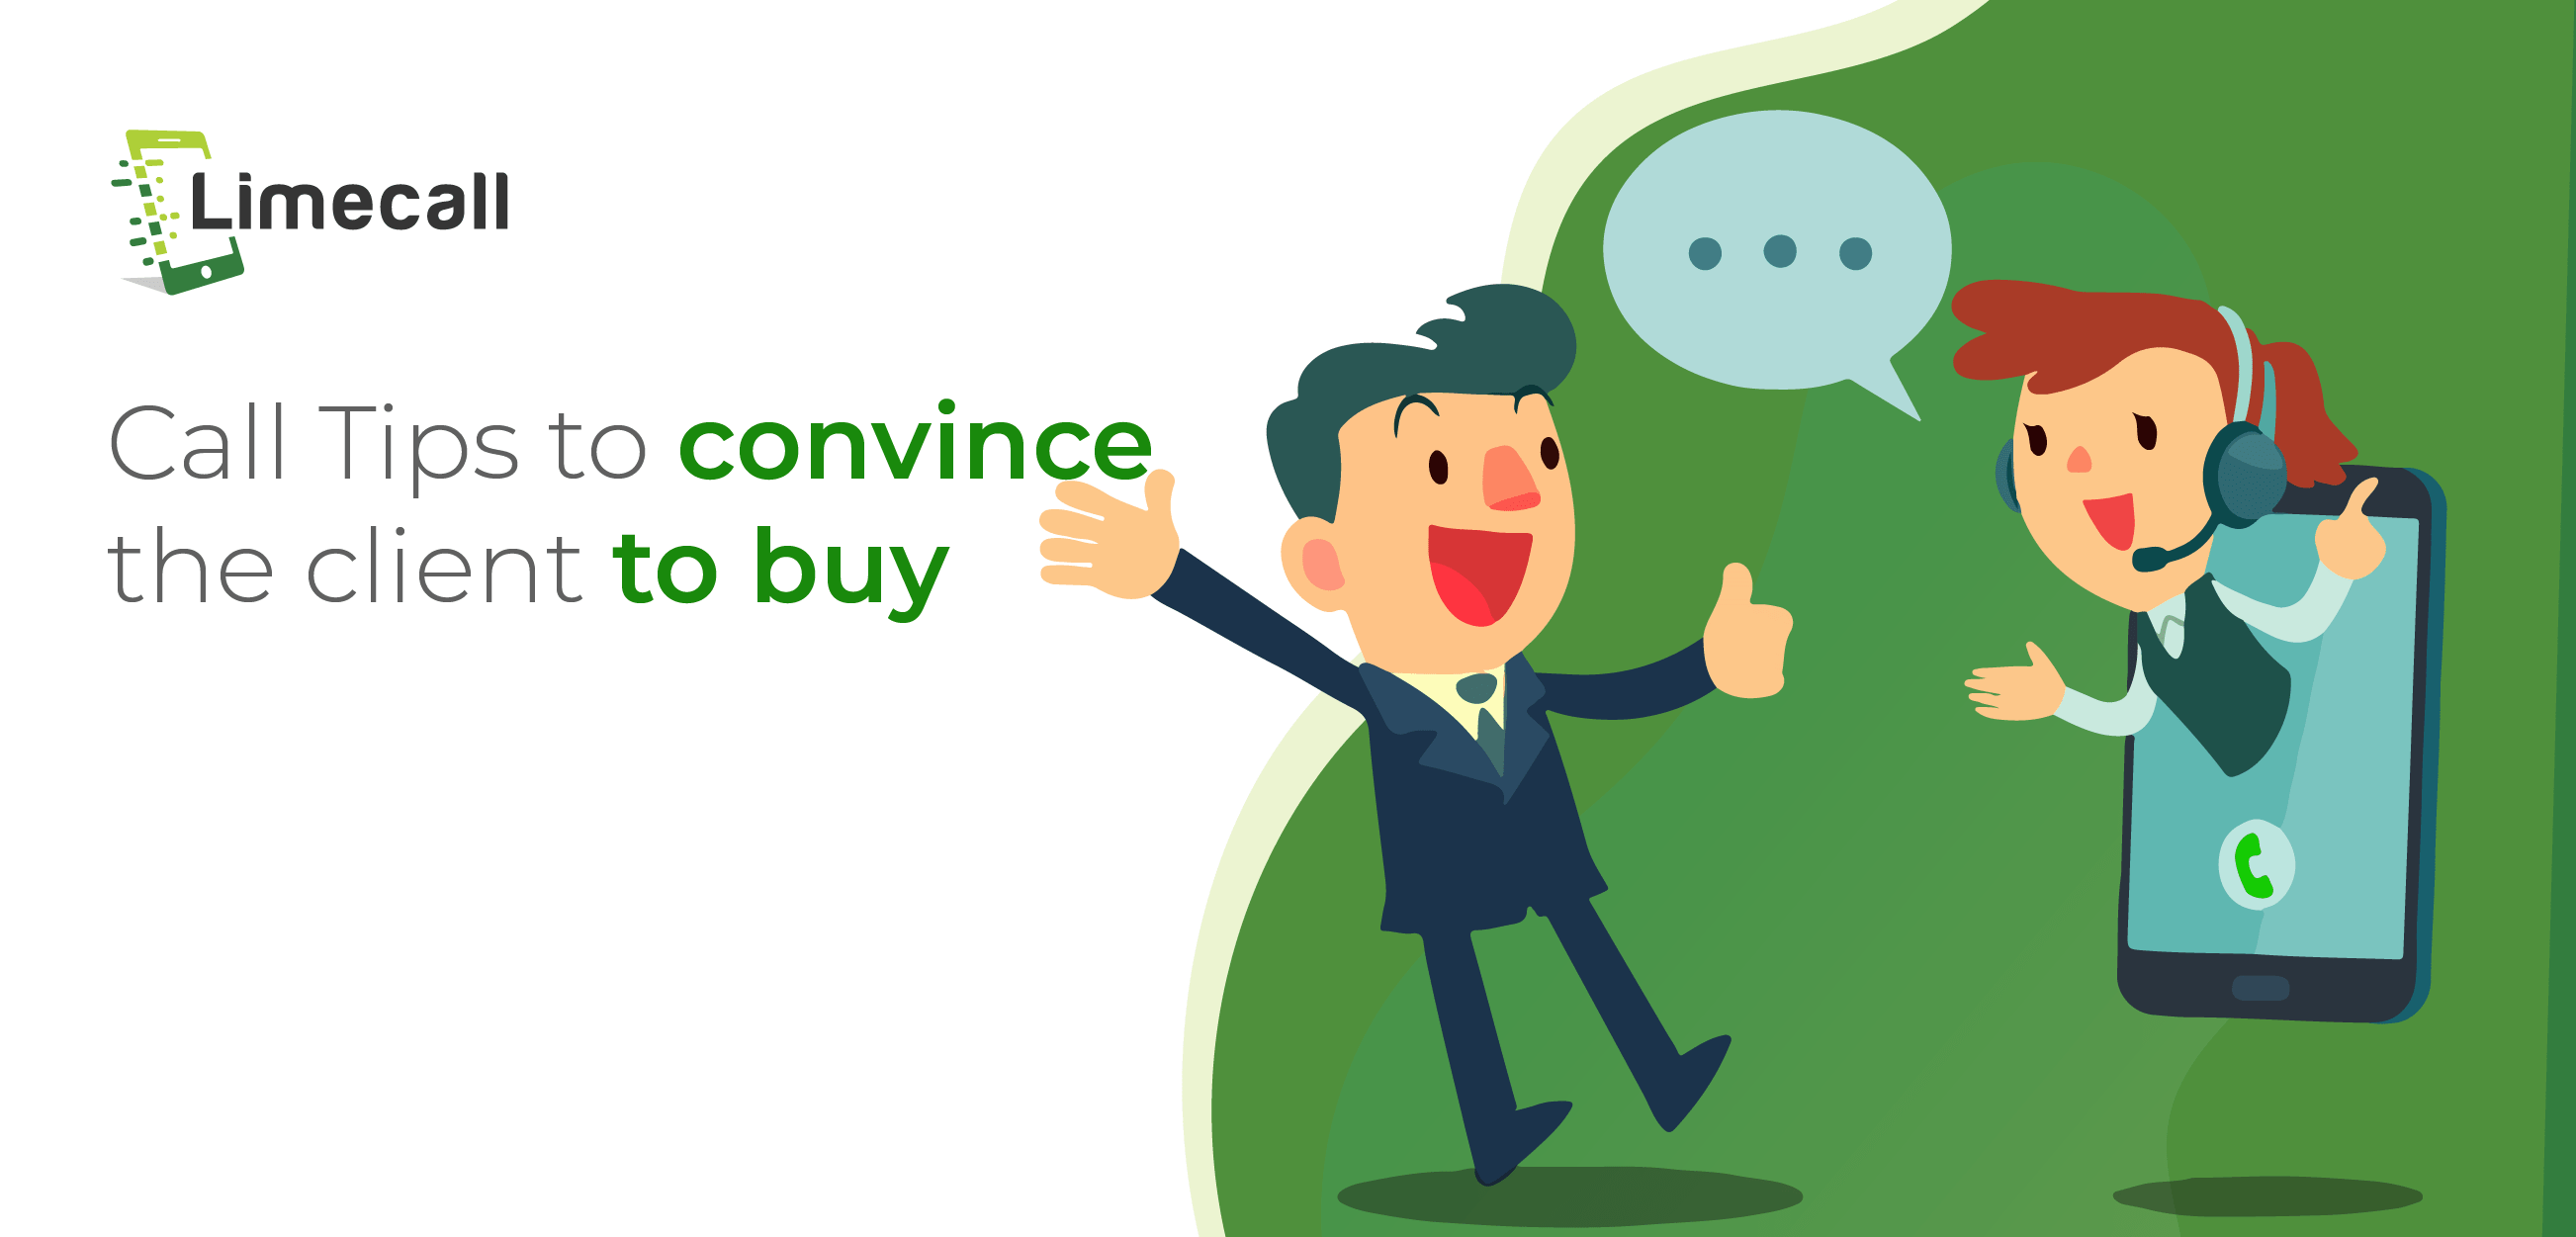 Call Tips to convince the client to buy